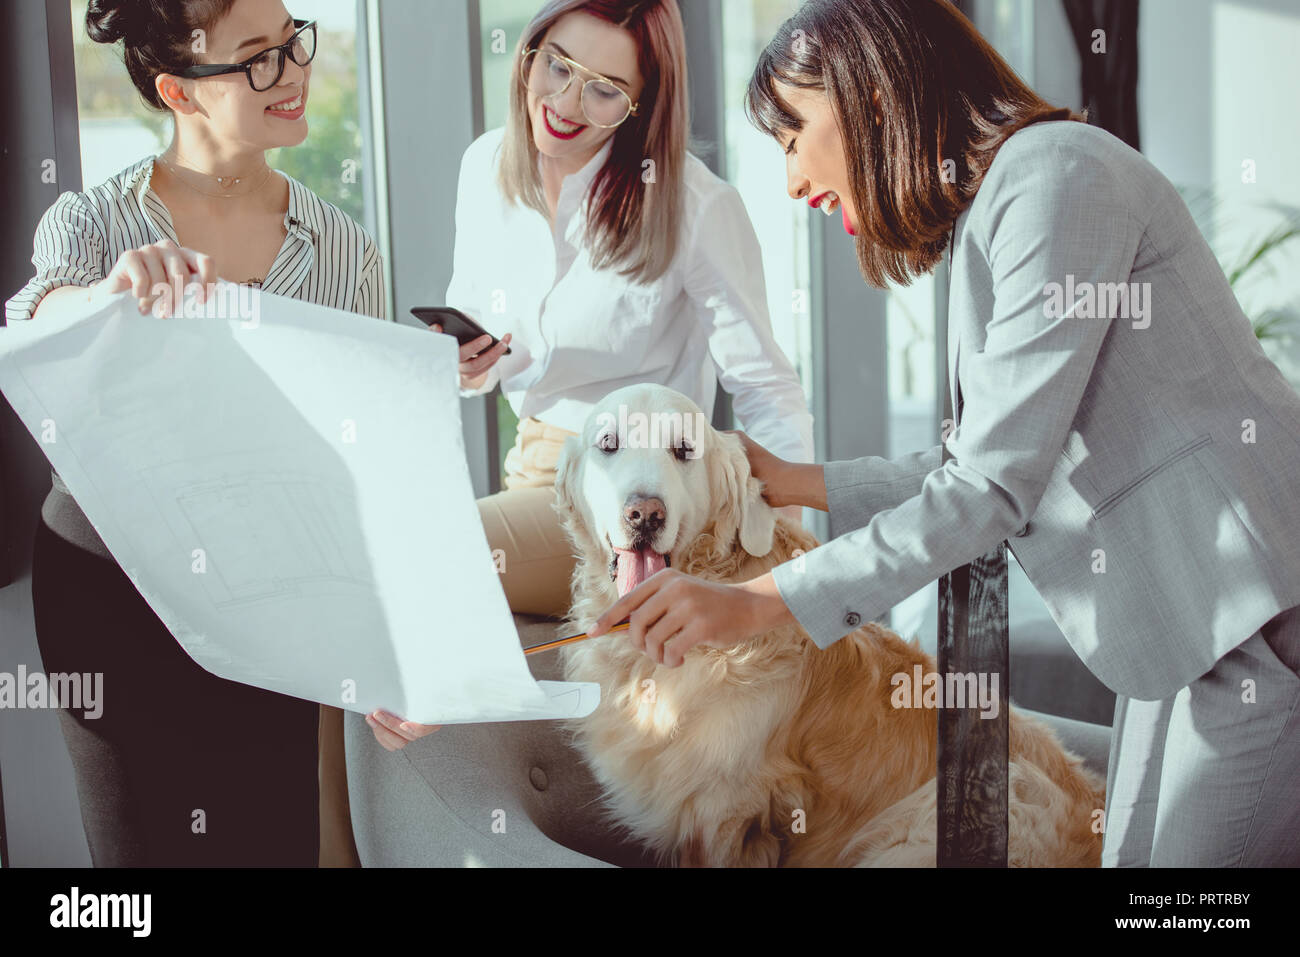 young multiethnic businesswomen in formal wear playing with dog at office - Stock Image